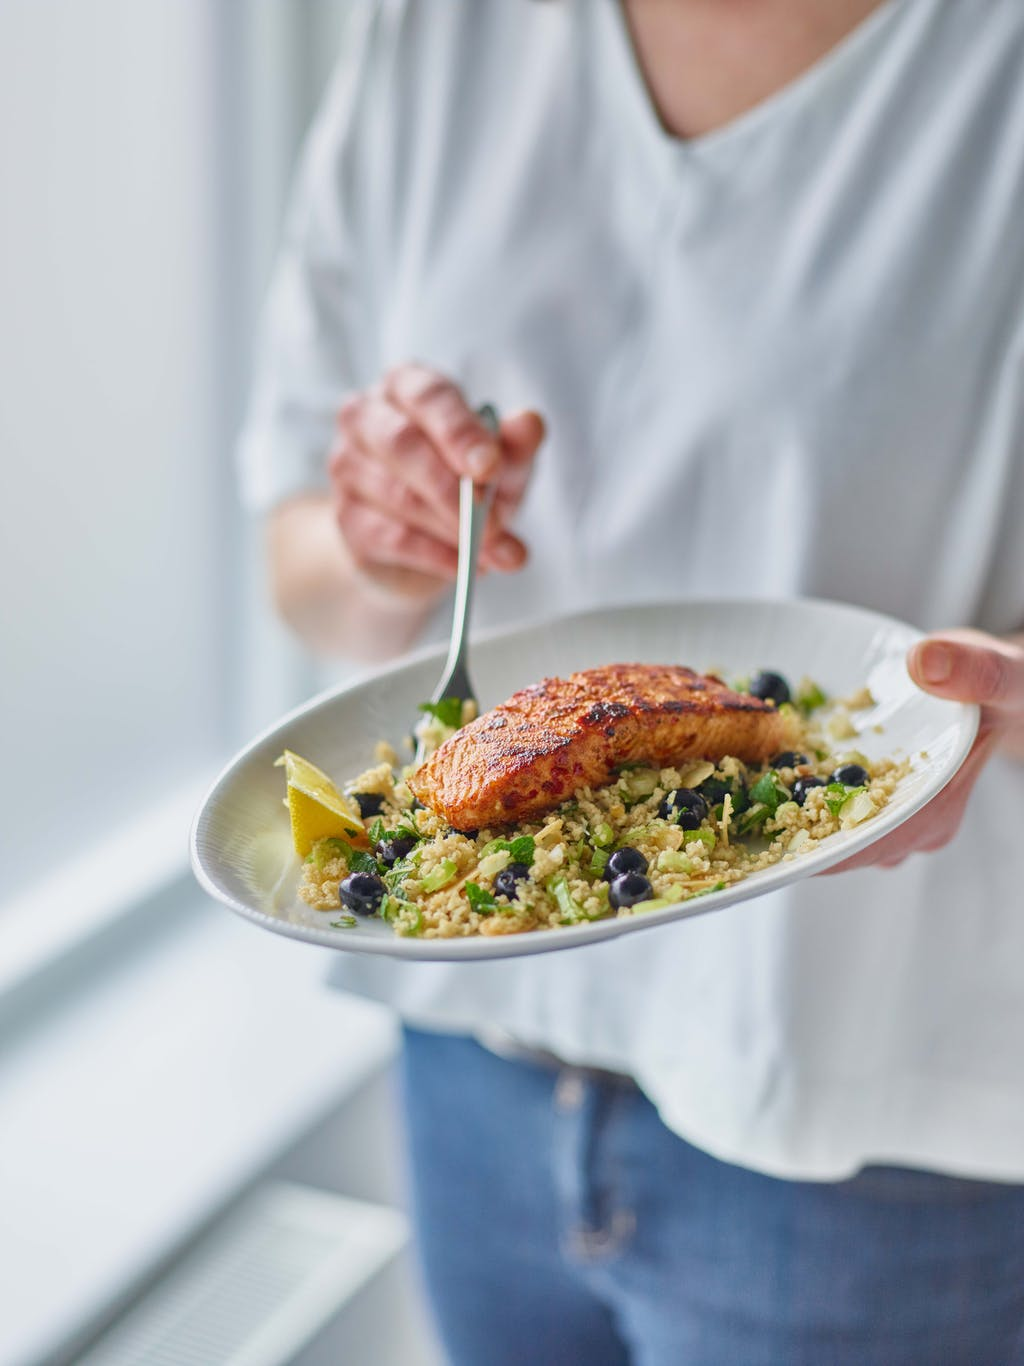 Blueberry griddled harissa salmon blueberry couscous interaction WEB